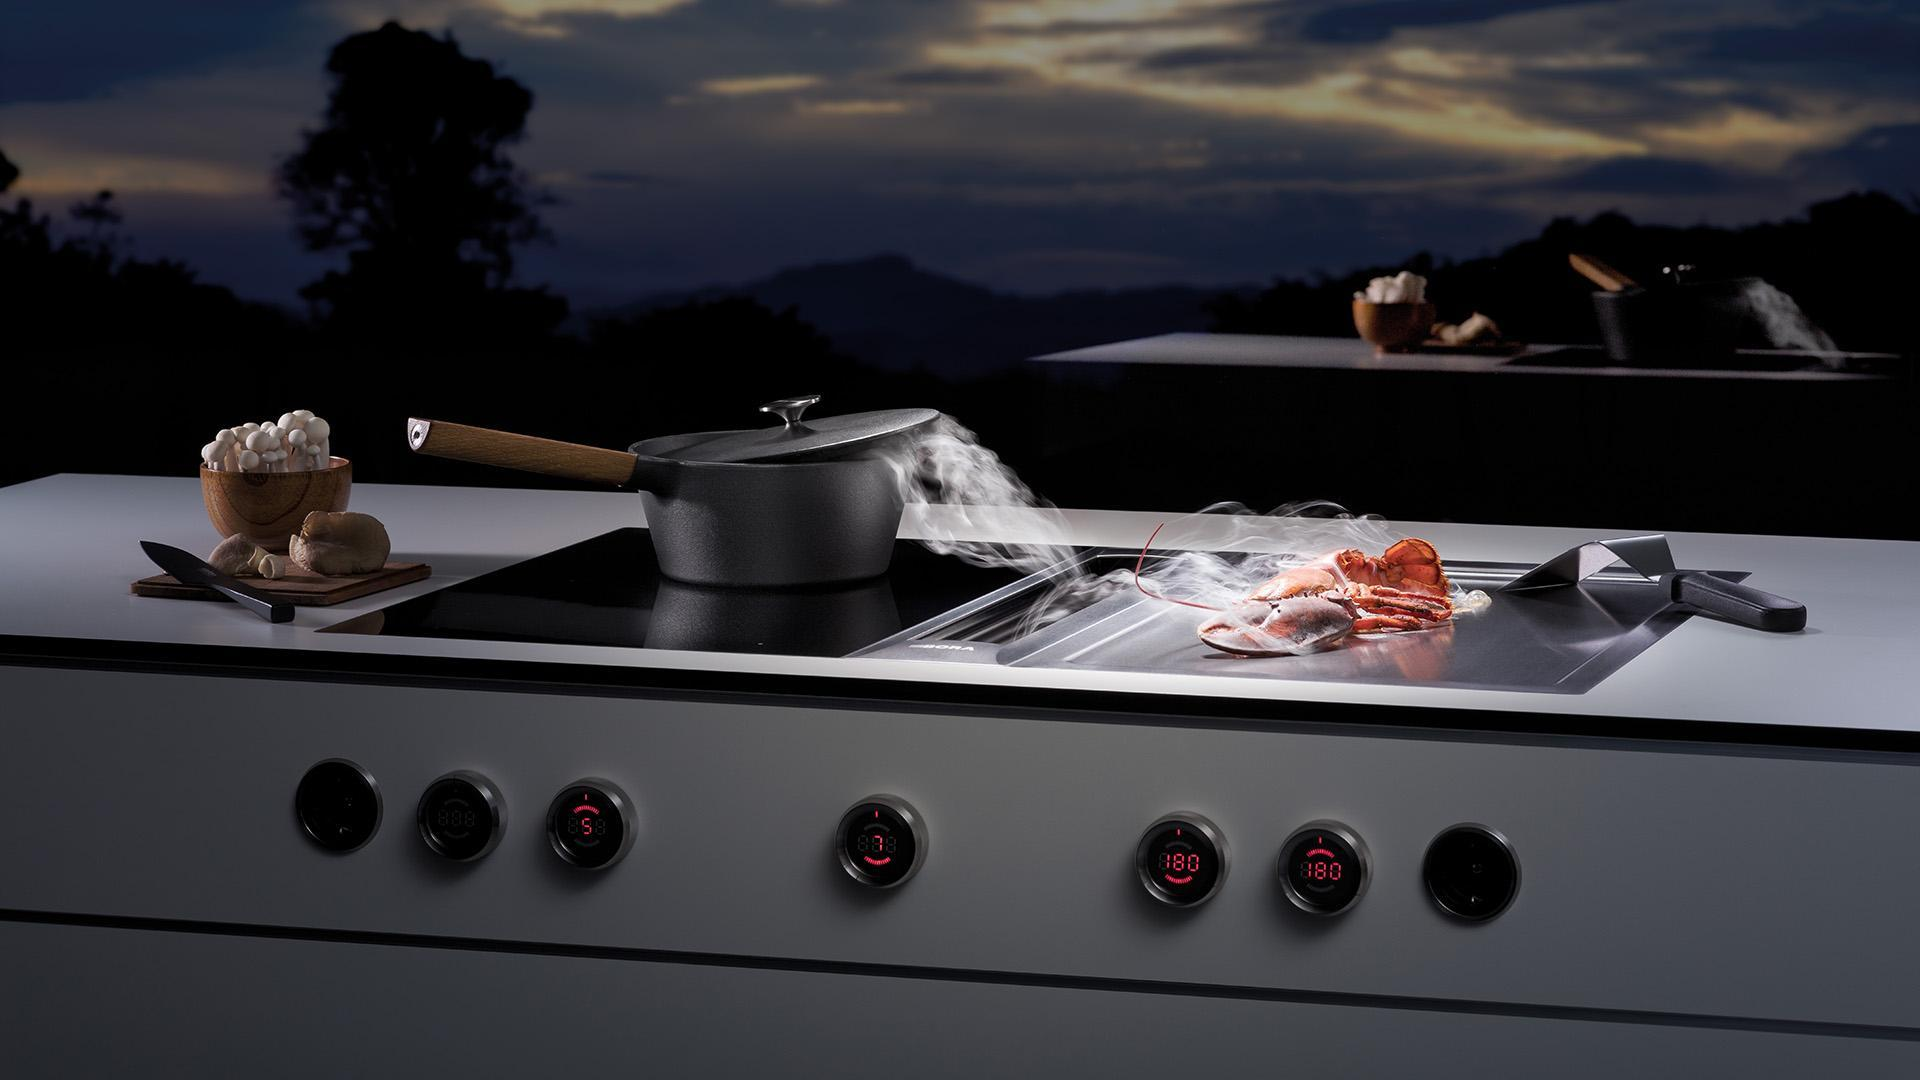 The Bora professional range cooker